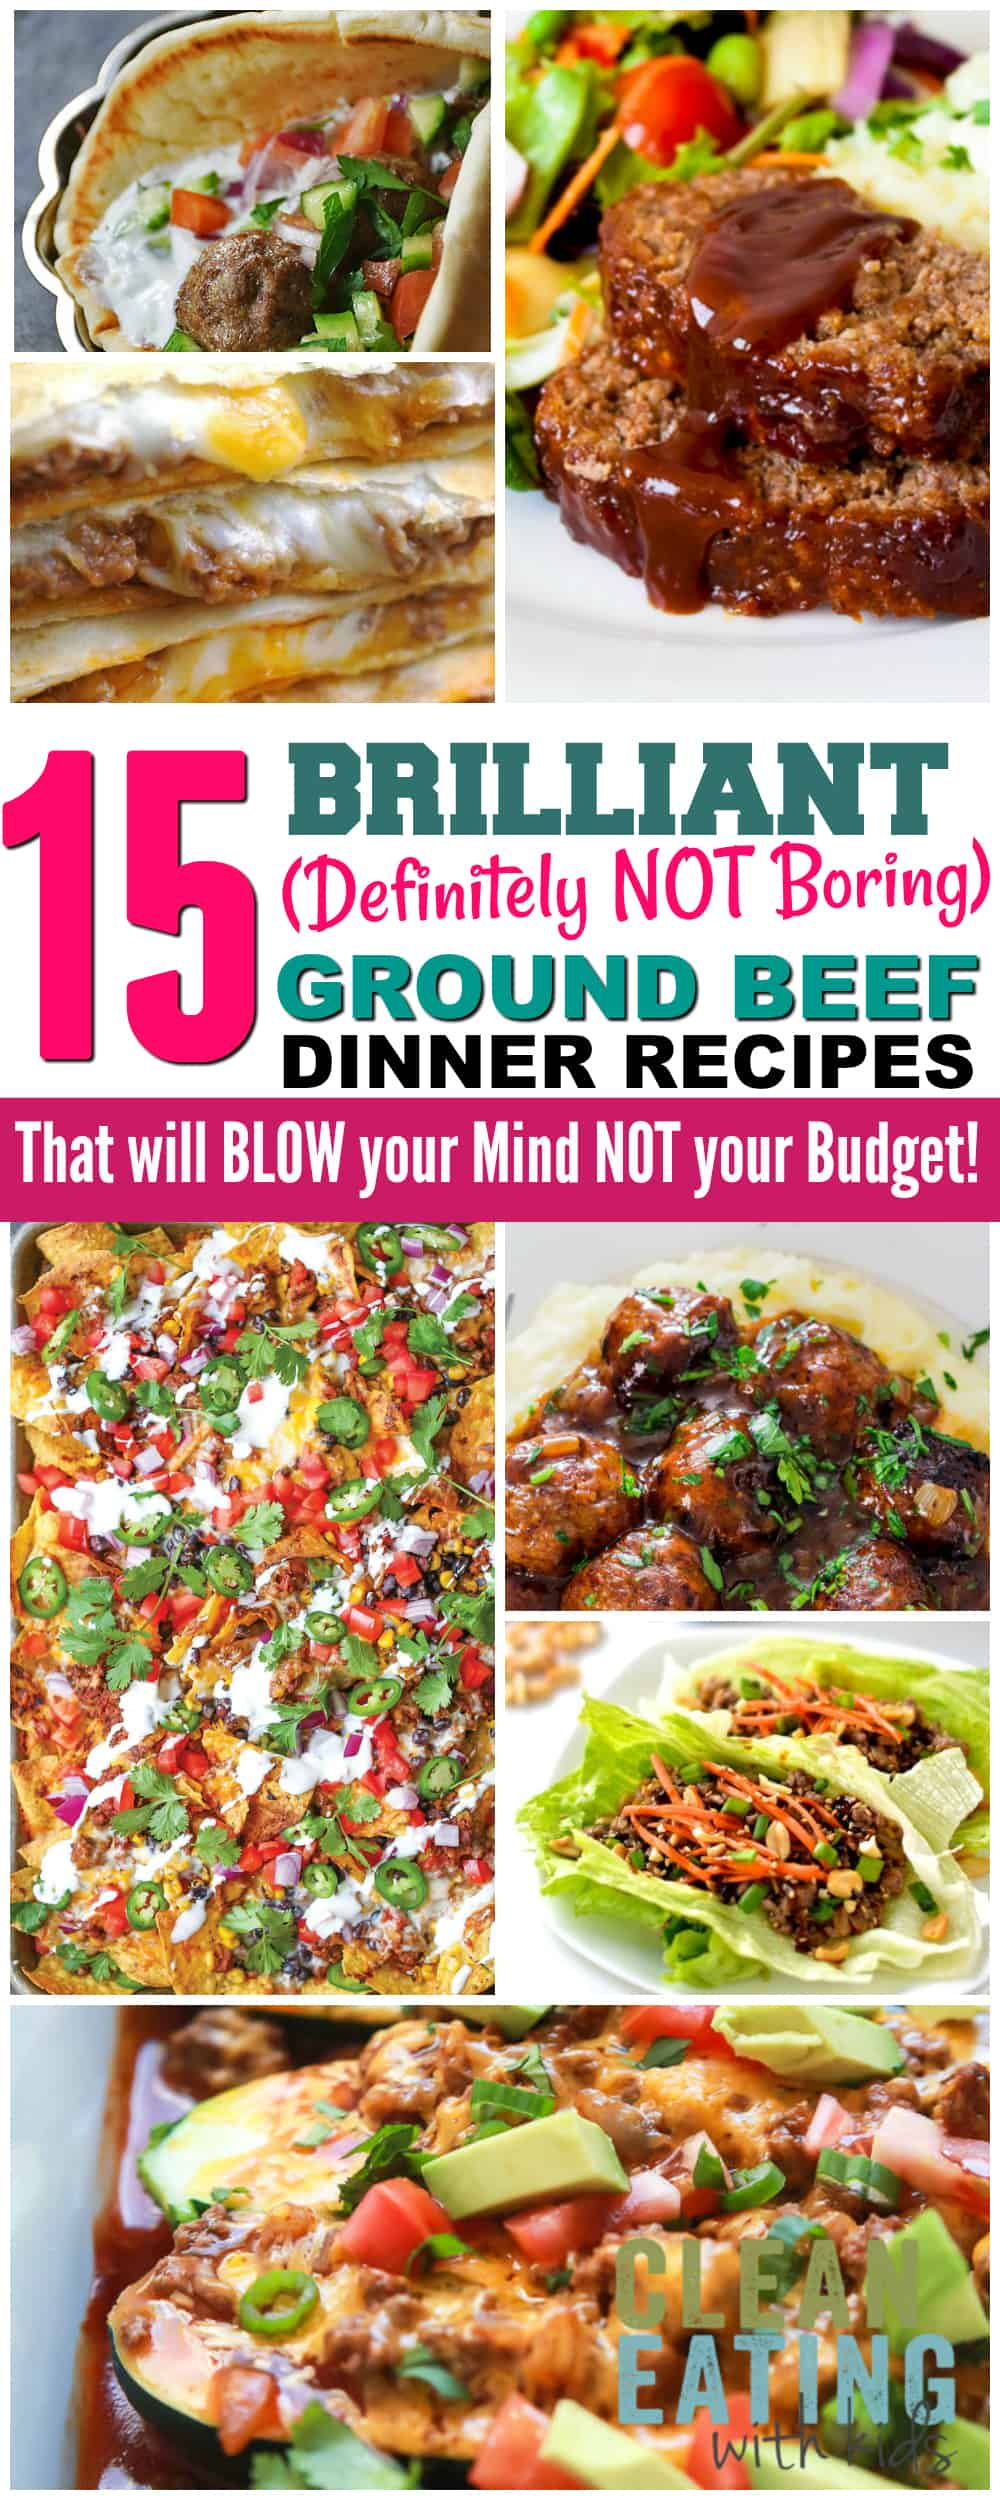 15 Minced beef Recipes that will Blow Mind (but not your budget!)